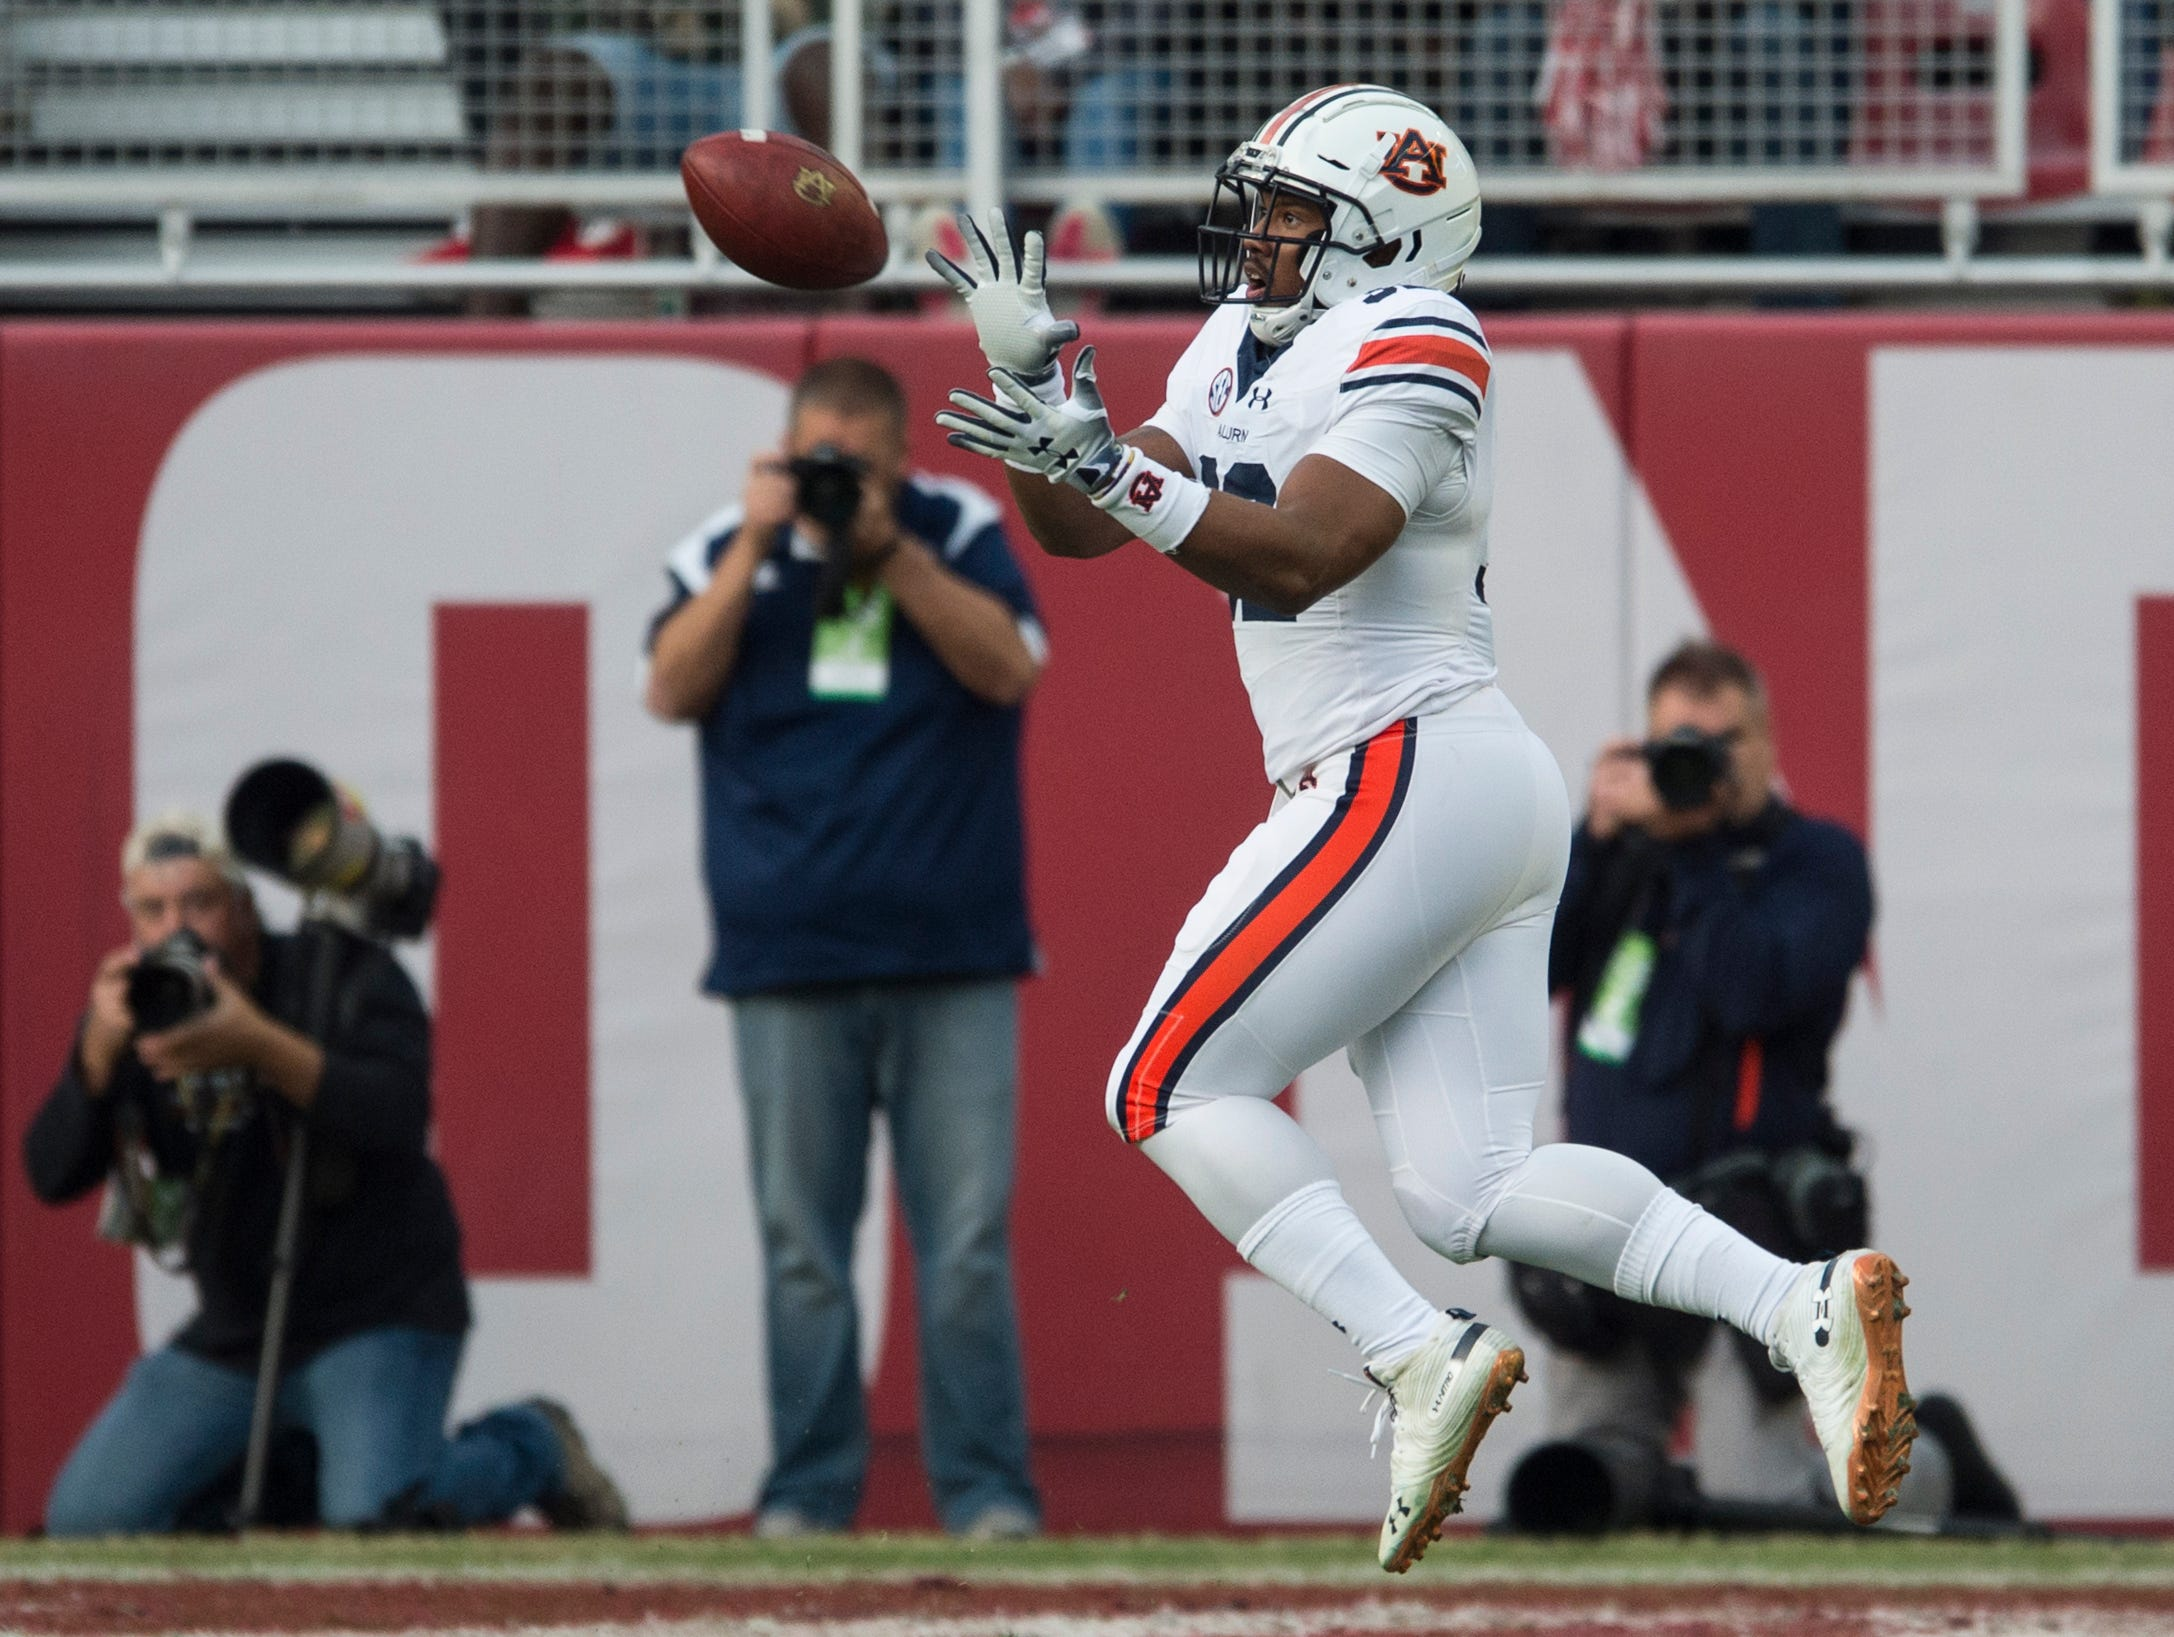 Auburn running back Malik Miller (32) catches a pass for a touchdown during the Iron Bowl at Bryant-Denny Stadium in Tuscaloosa, Ala., on Saturday, Nov. 24, 2018. Alabama leads Auburn 17-14 at halftime.